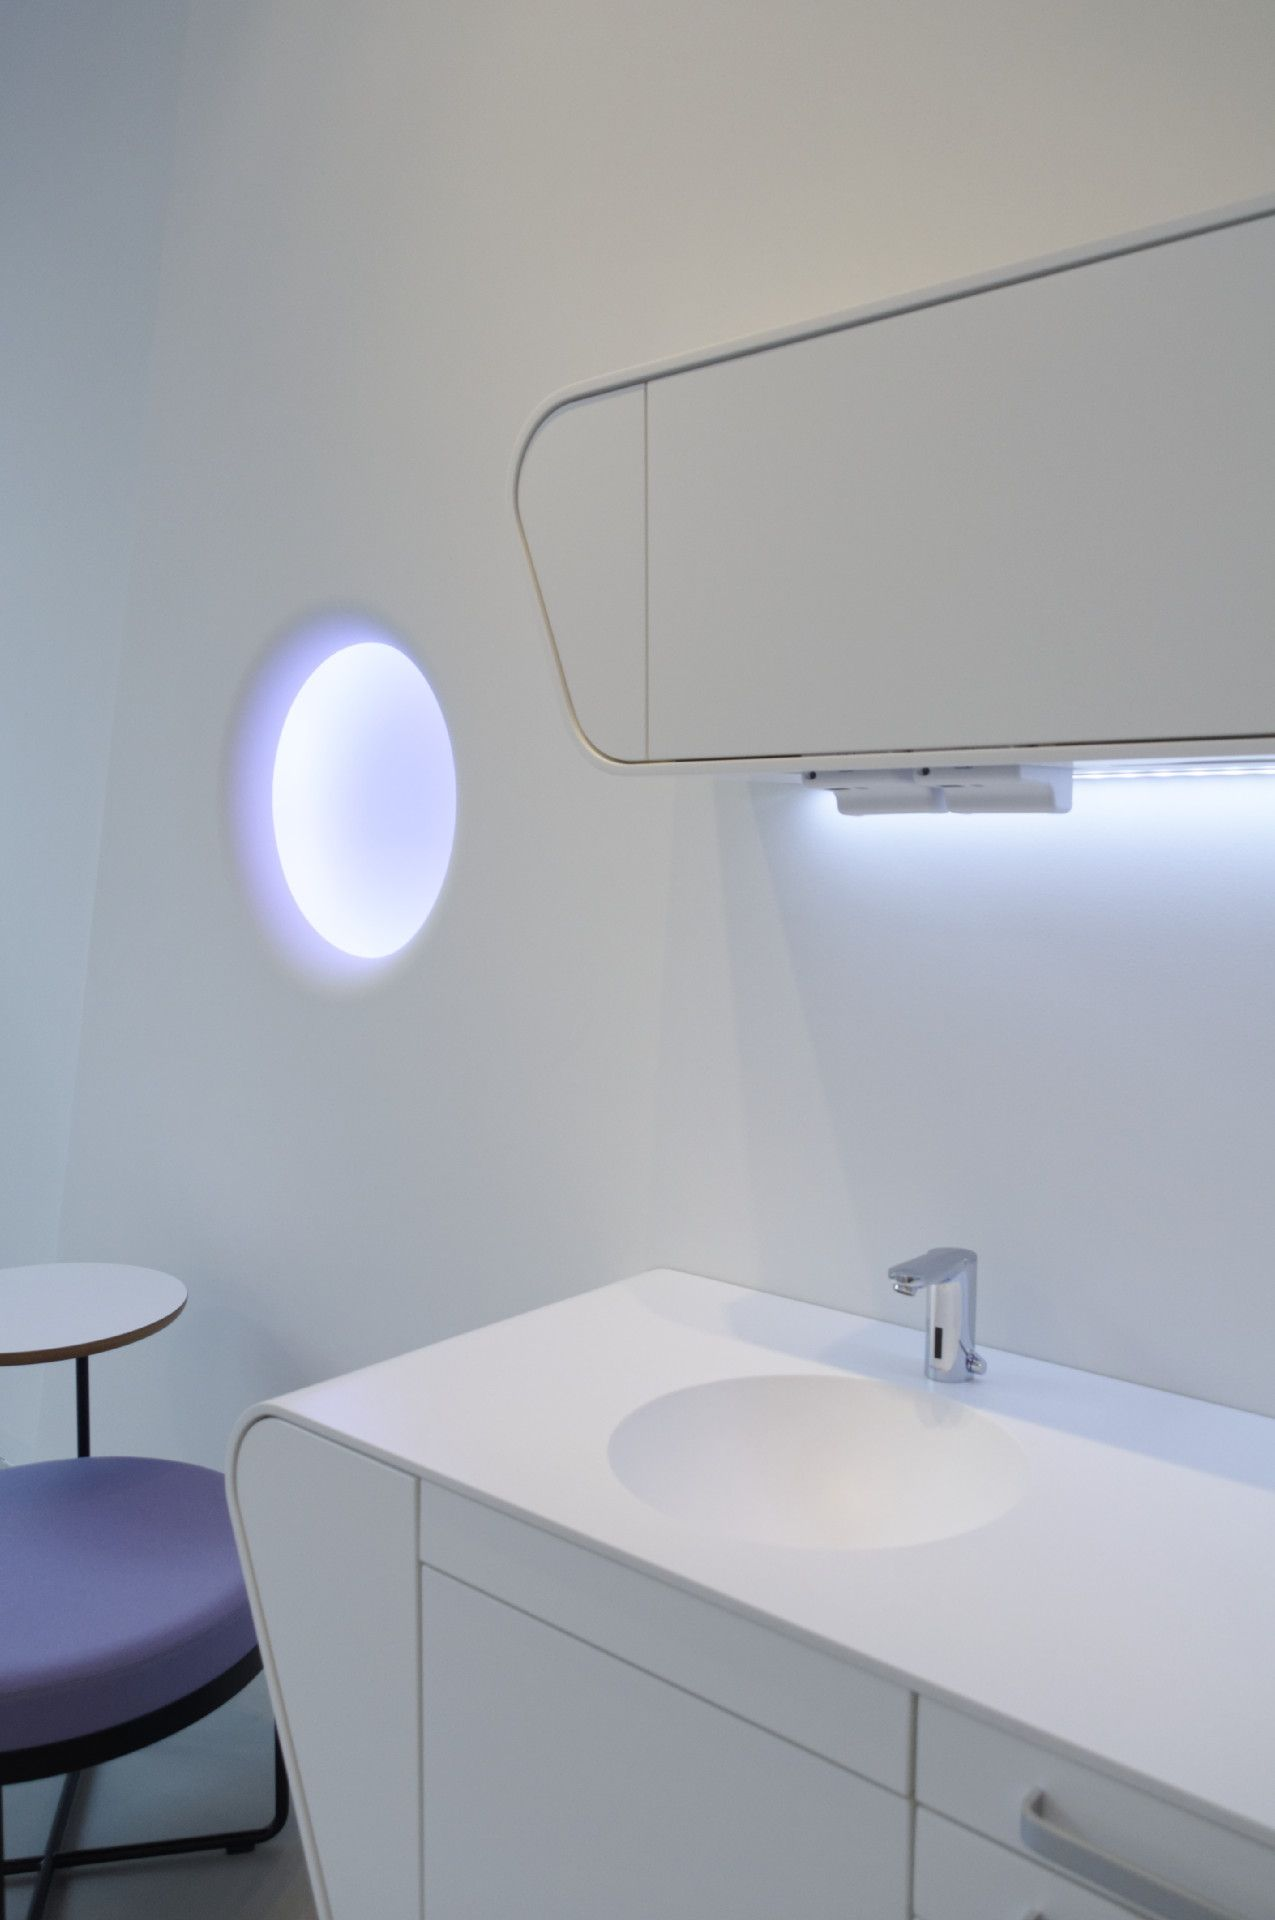 Flos Soft Architecture Uso Cove Lighting Seitenbeleuchtung